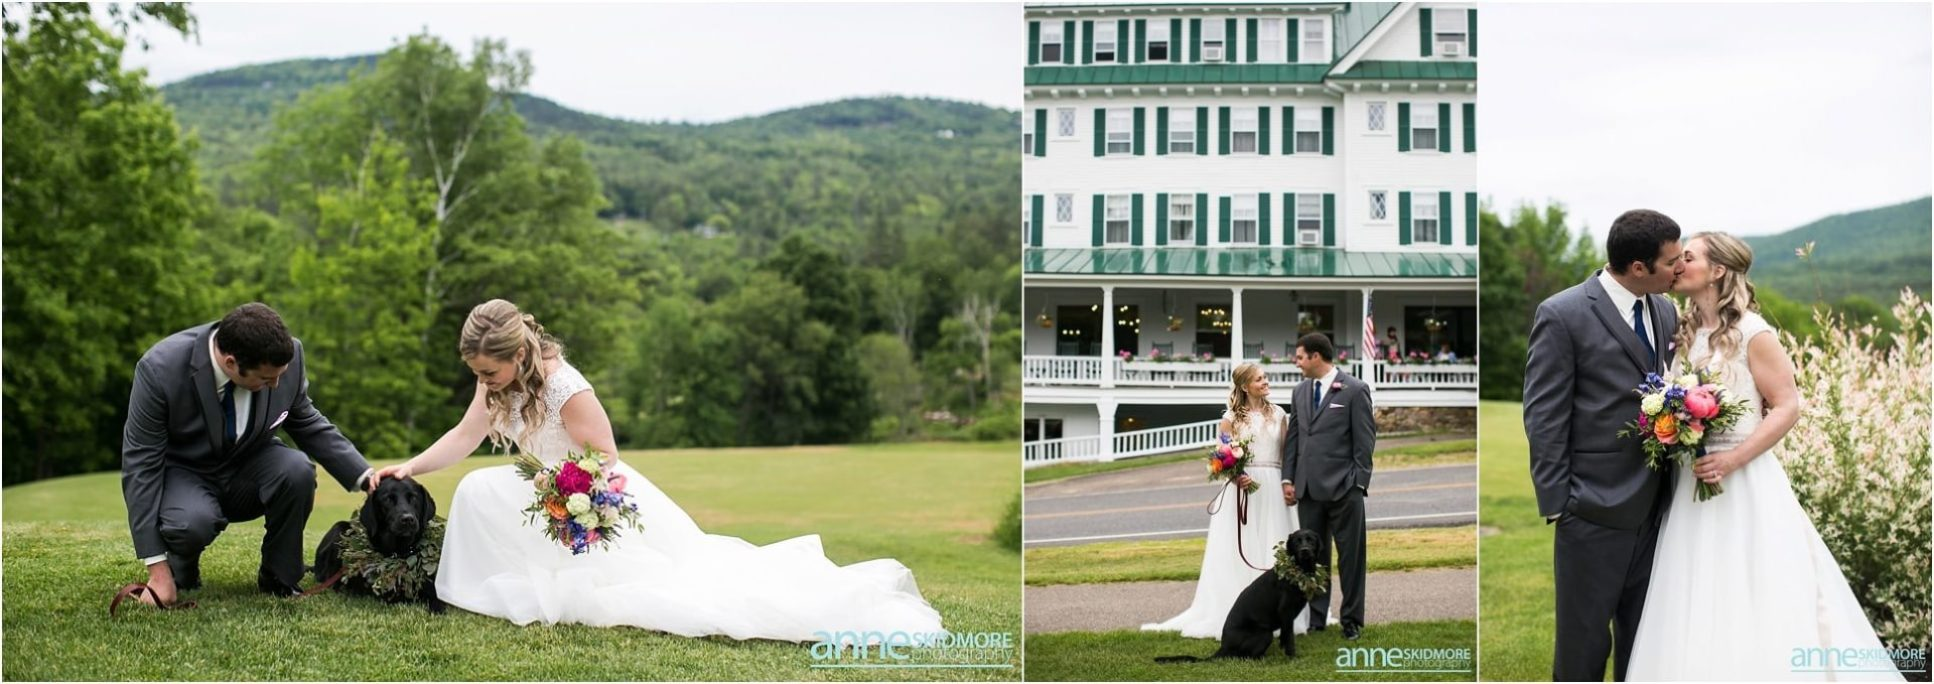 Eagle_Mountain_House_Wedding__033